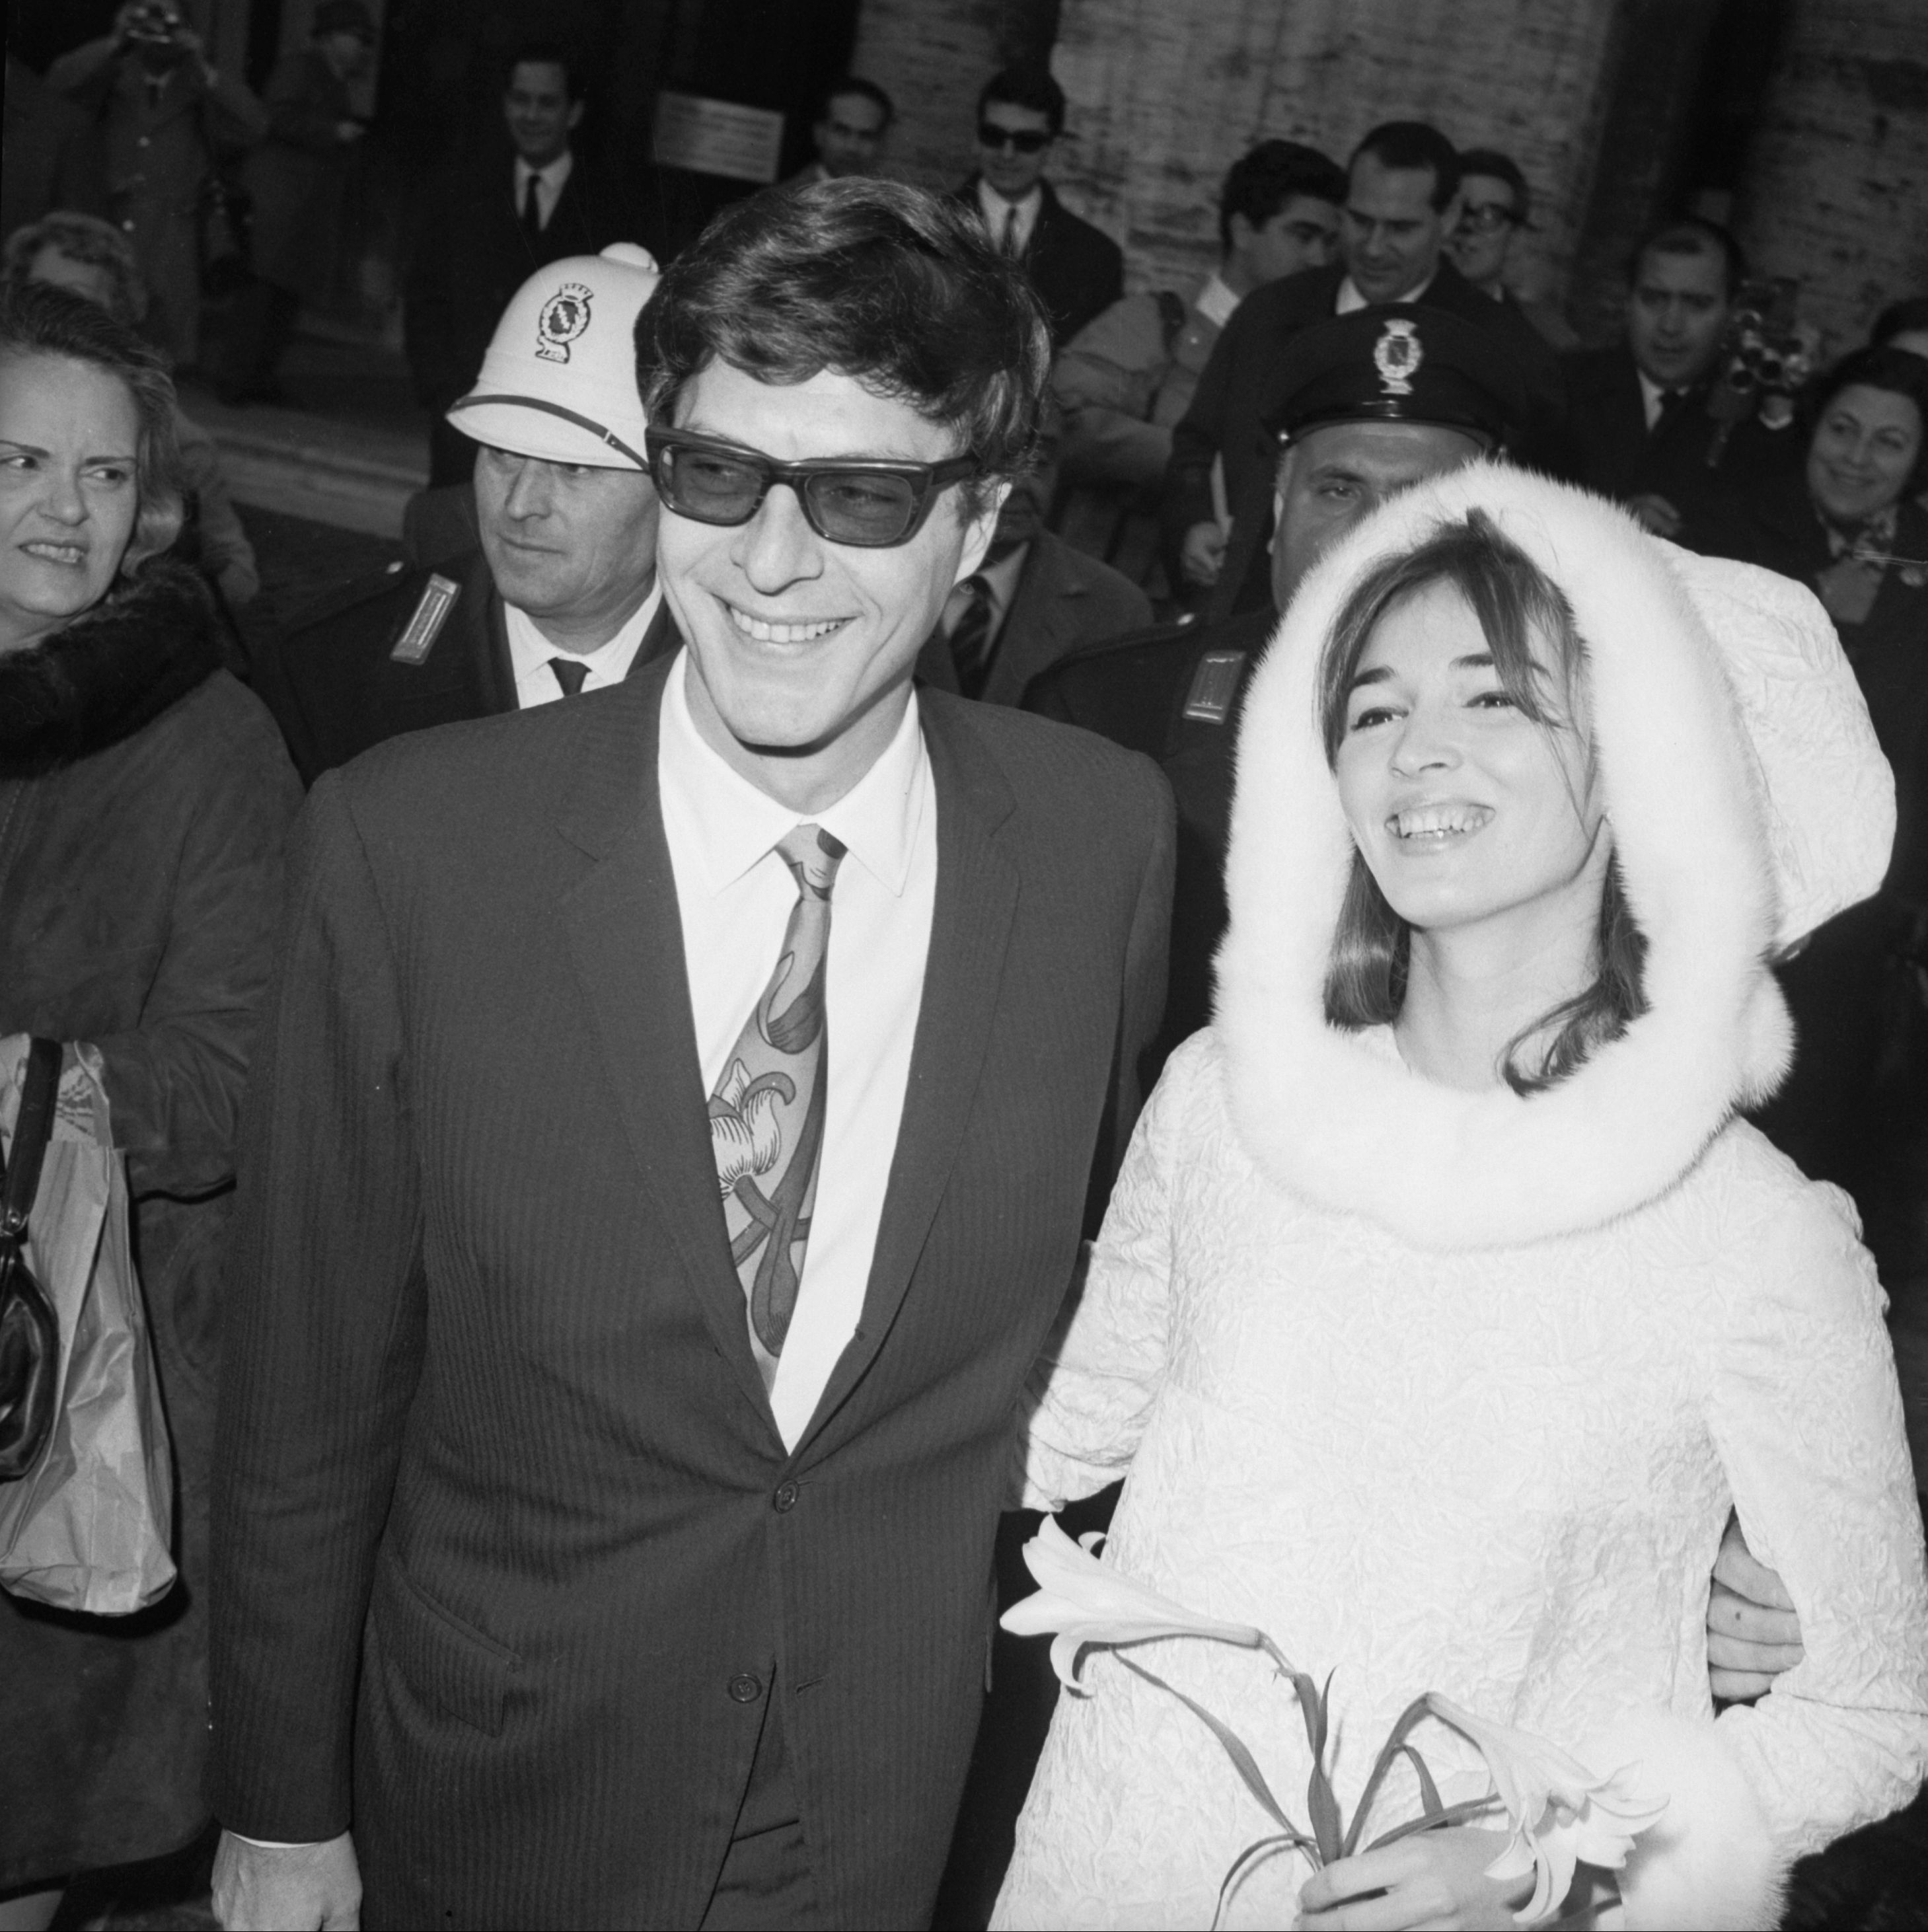 Talitha Pol's Wedding Dress Talitha Pol, an actress and dancer, was married to John Paul Getty Jr. from 1966 until her death in 1971. His father, Jean Paul Getty, founded the Getty Oil company and was in the '50s, one of the richest Americans.